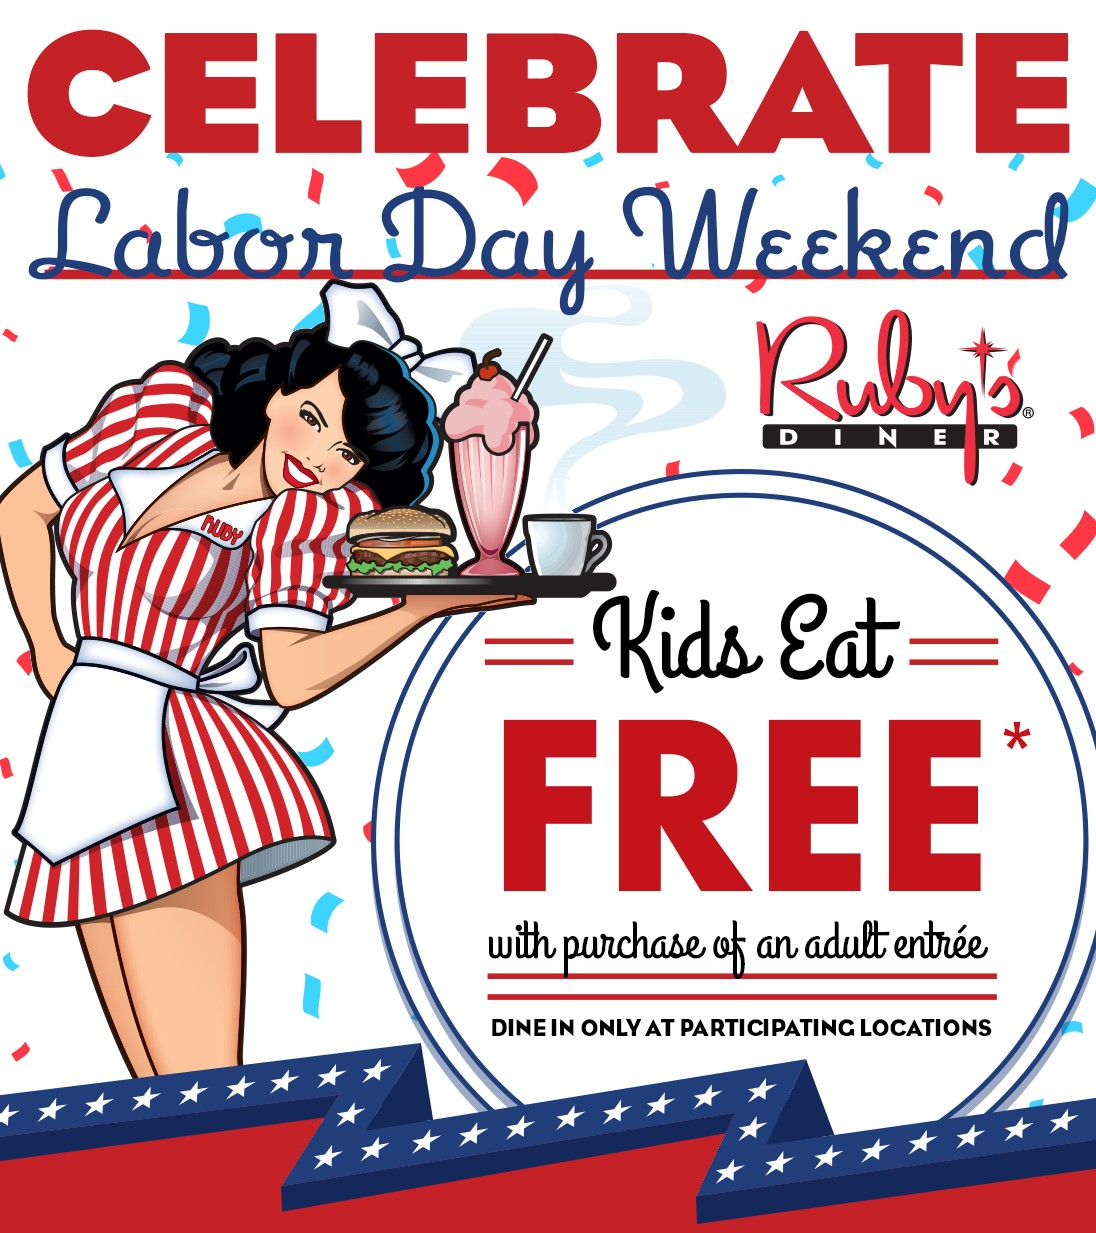 Kids Eat Free On Labor Day Weekend